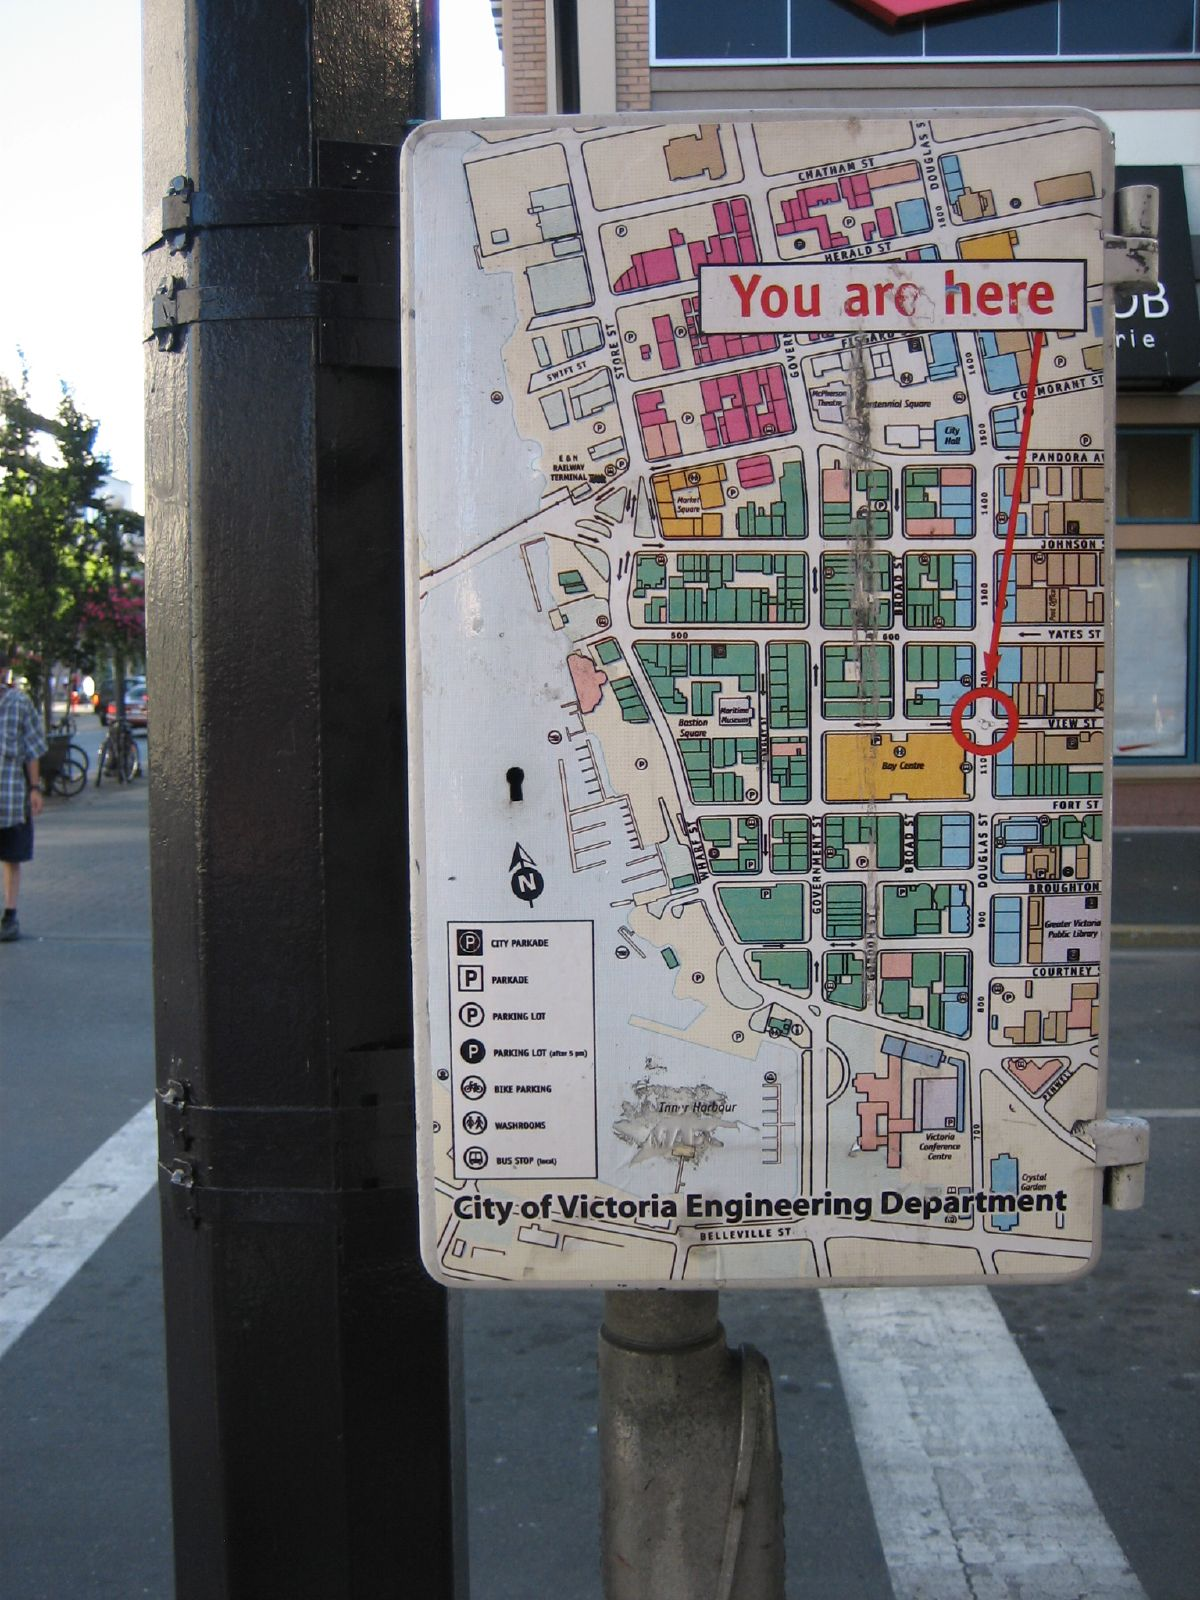 The City of Victoria in Canada covered a utility box with a map showing your location